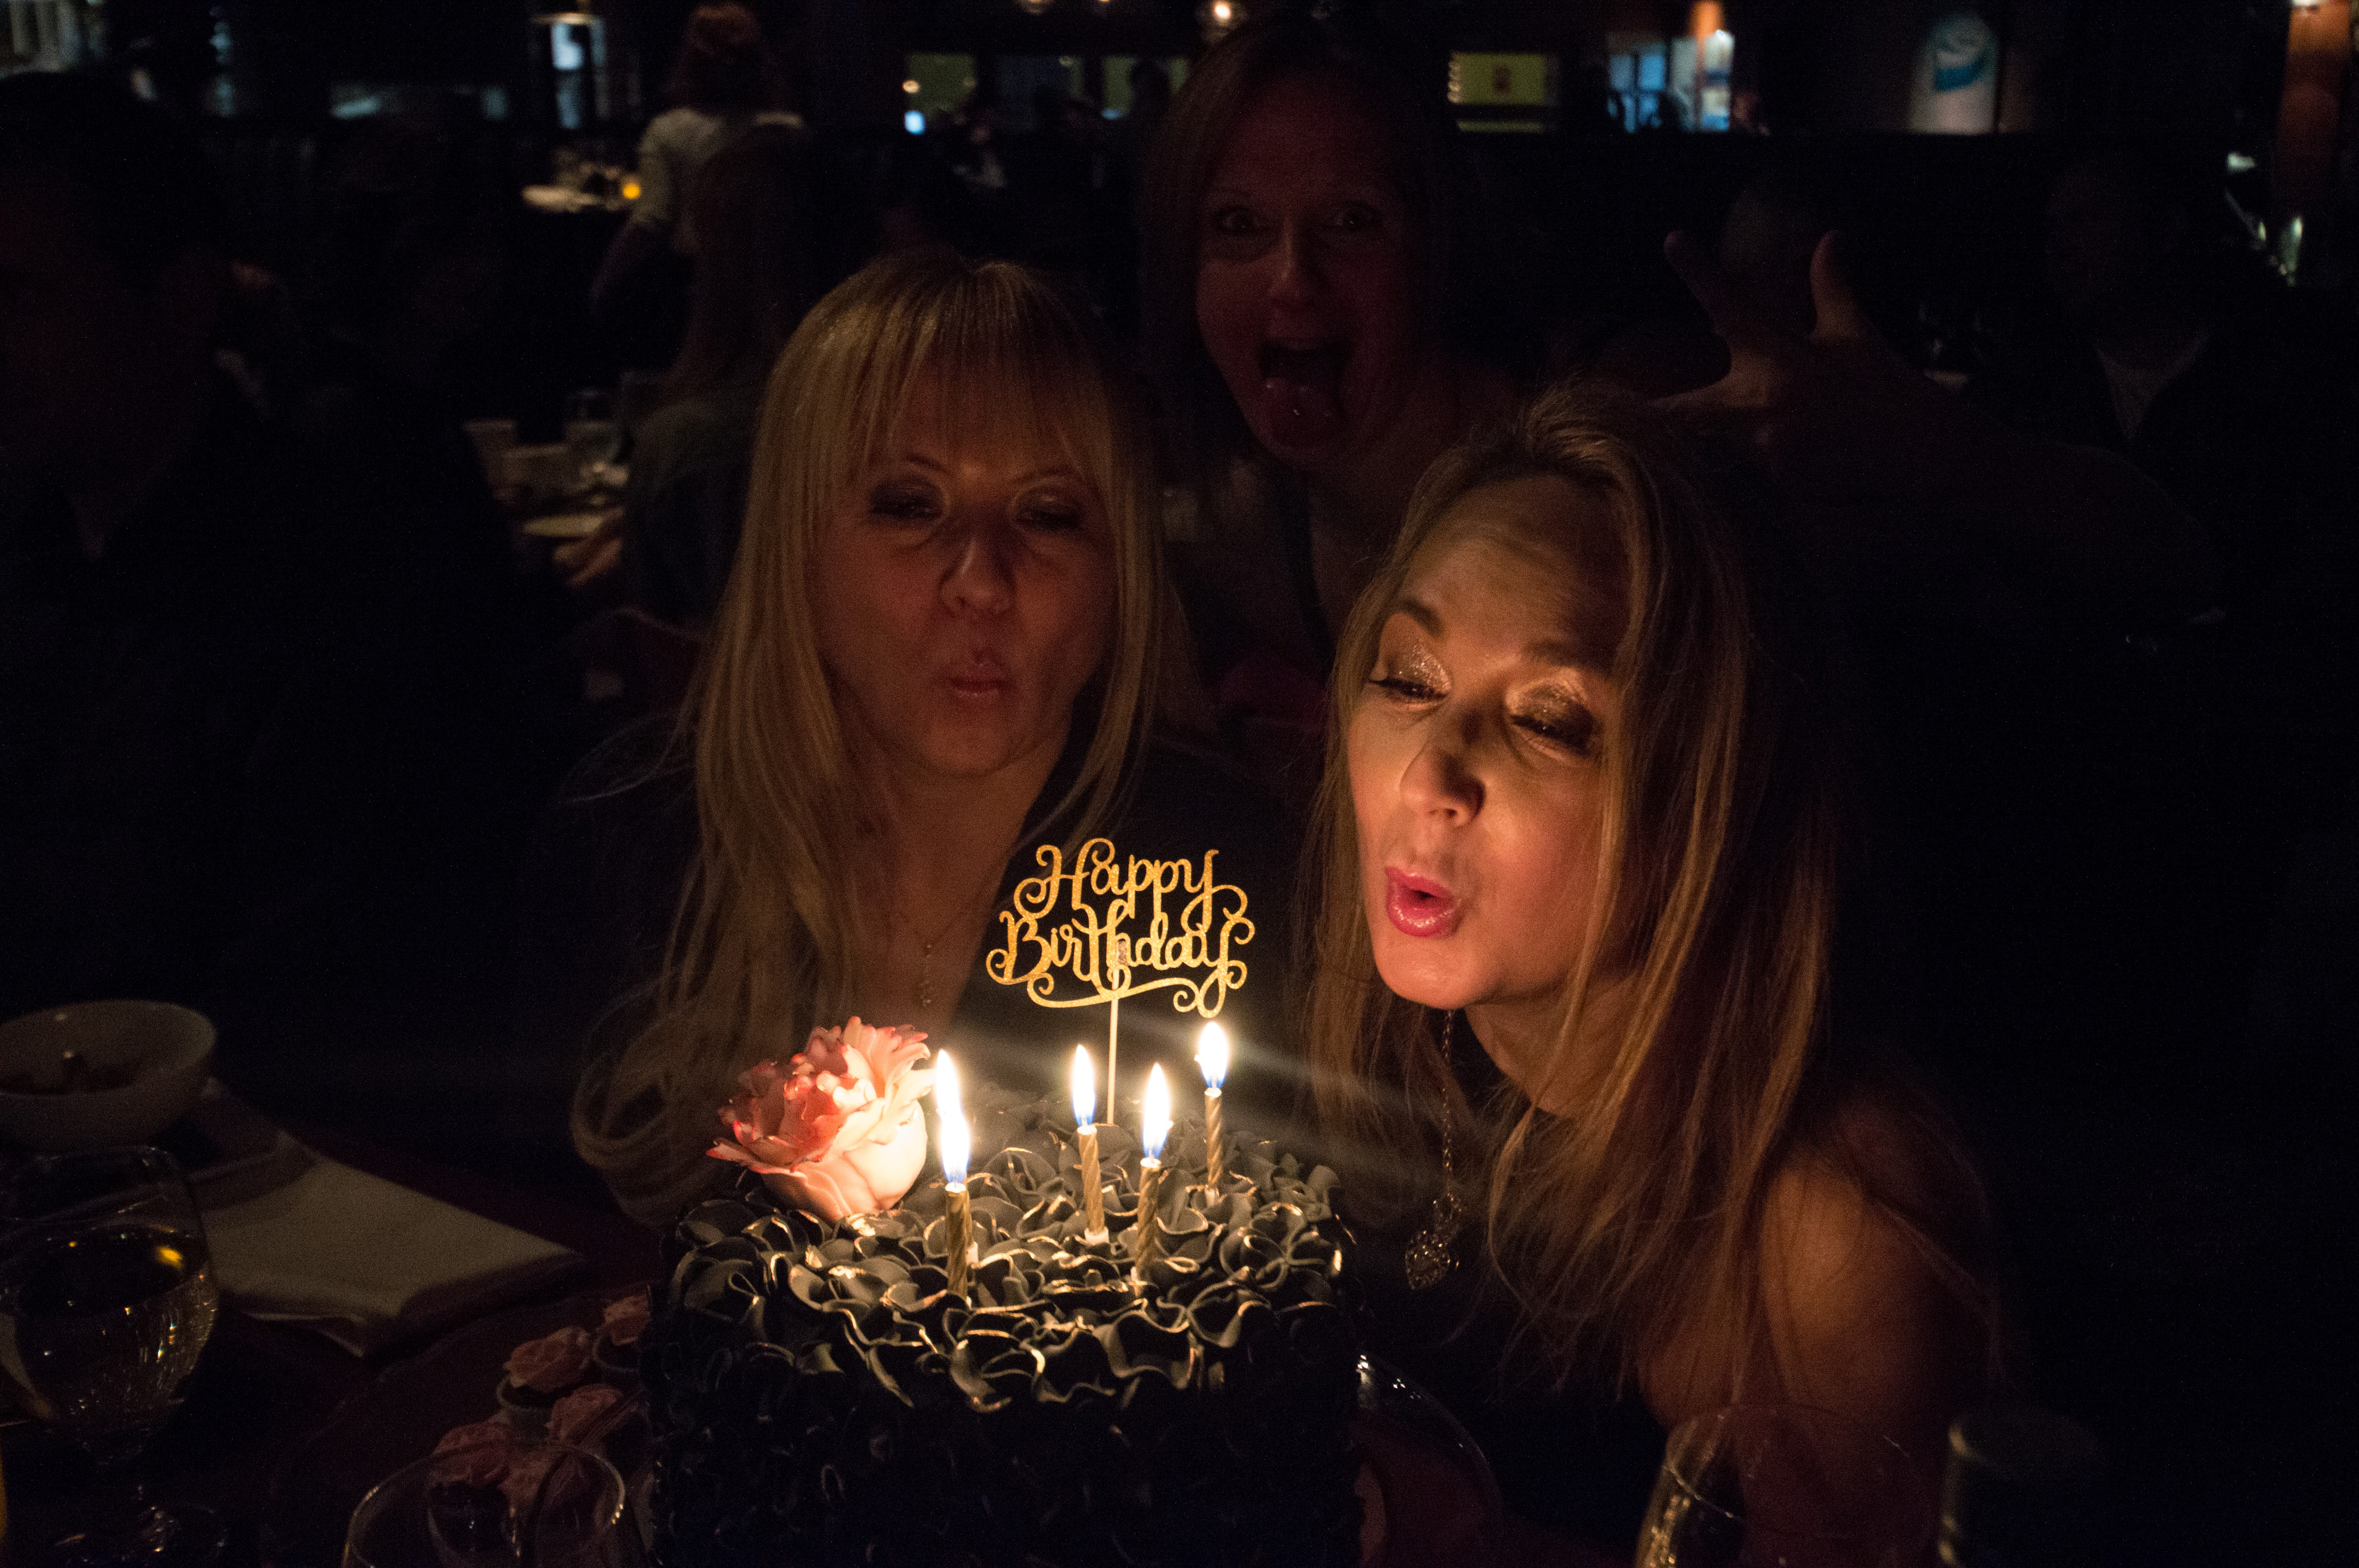 Blowing_out_the_candles[1]